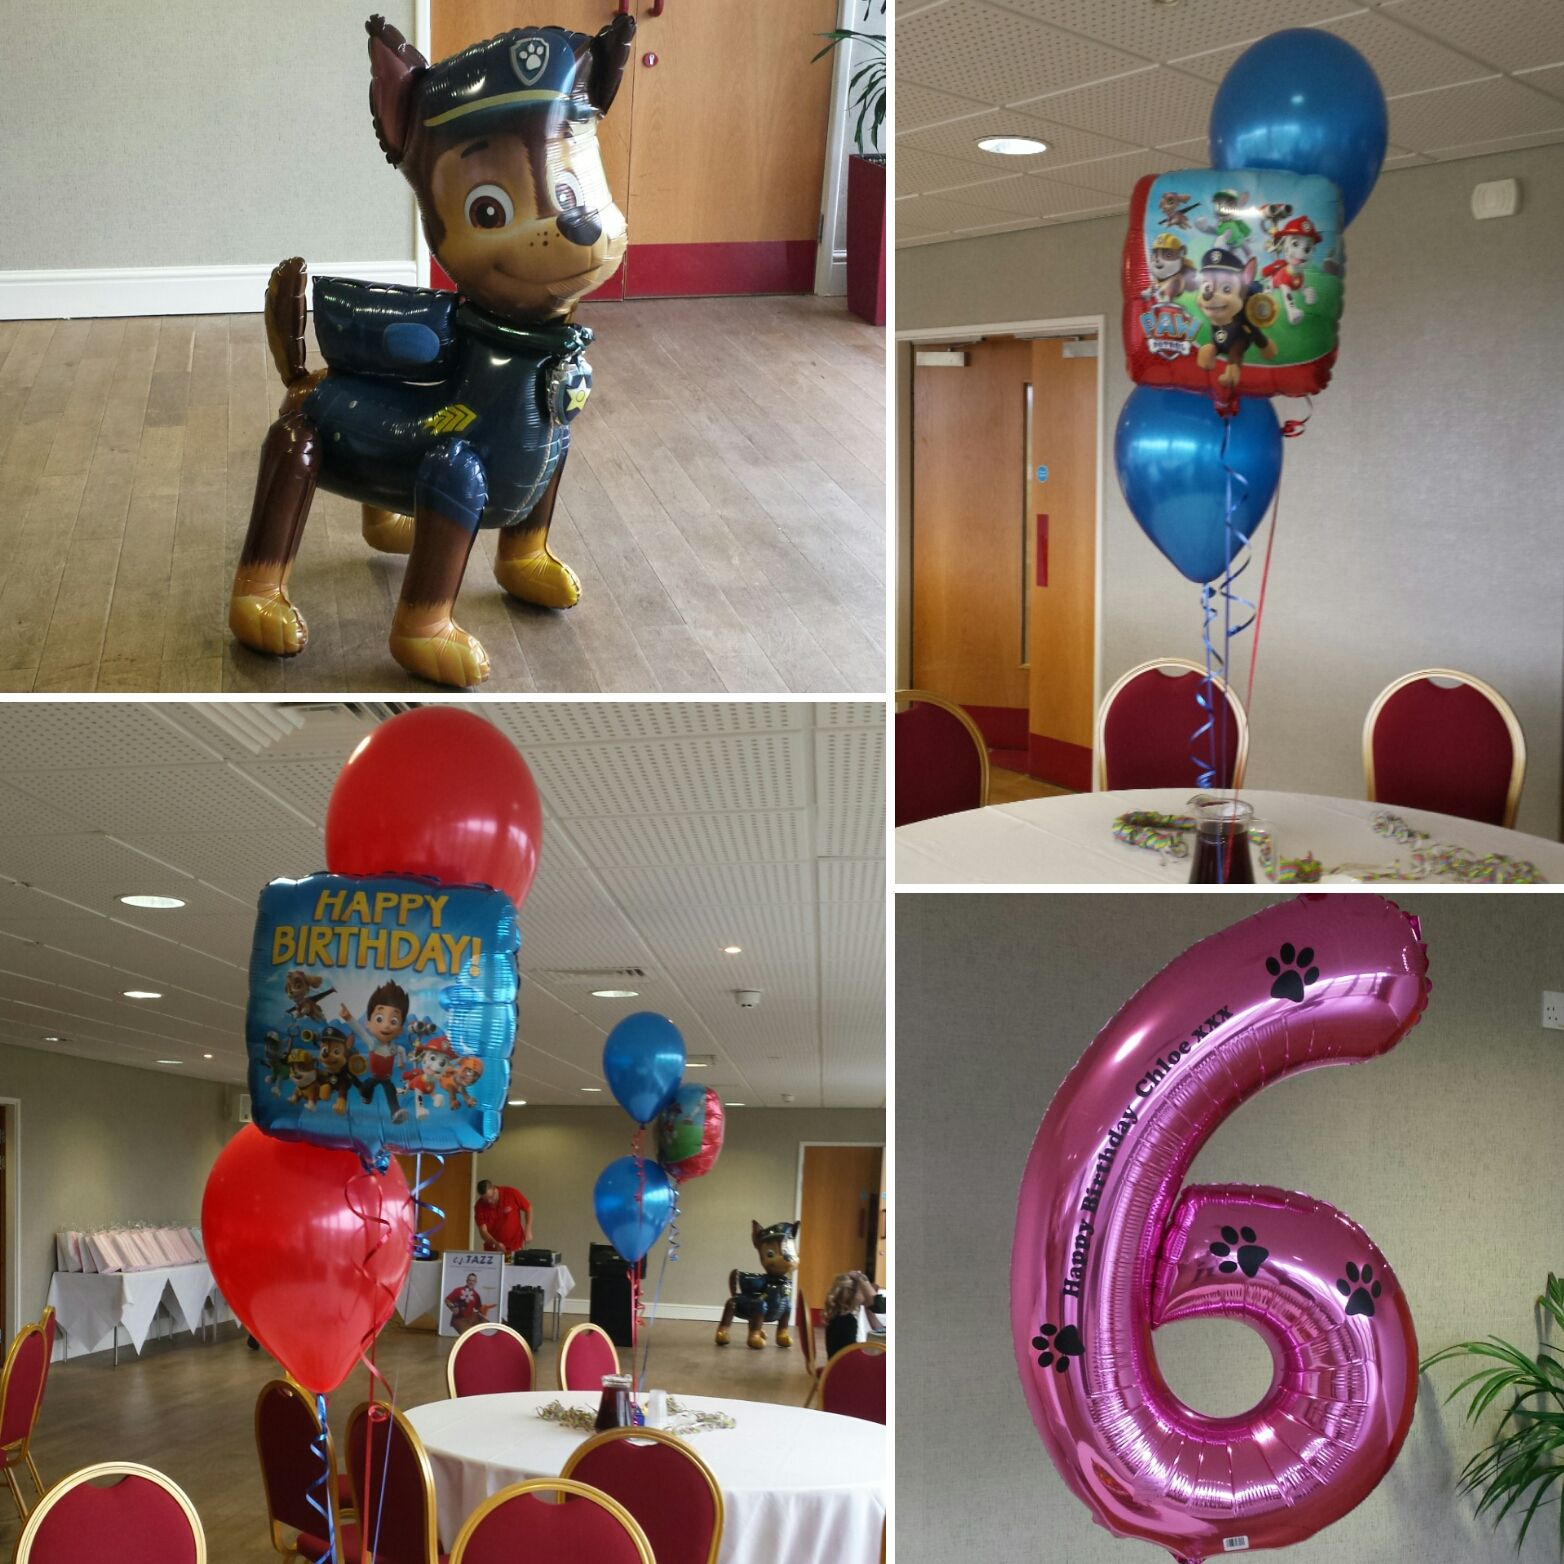 Children S Party Balloons Created By Pink Tree Parties Kirkham Preston Www Pinktreeparties Co Uk Visit Us For More Party Balloons Wedding Balloons Balloons